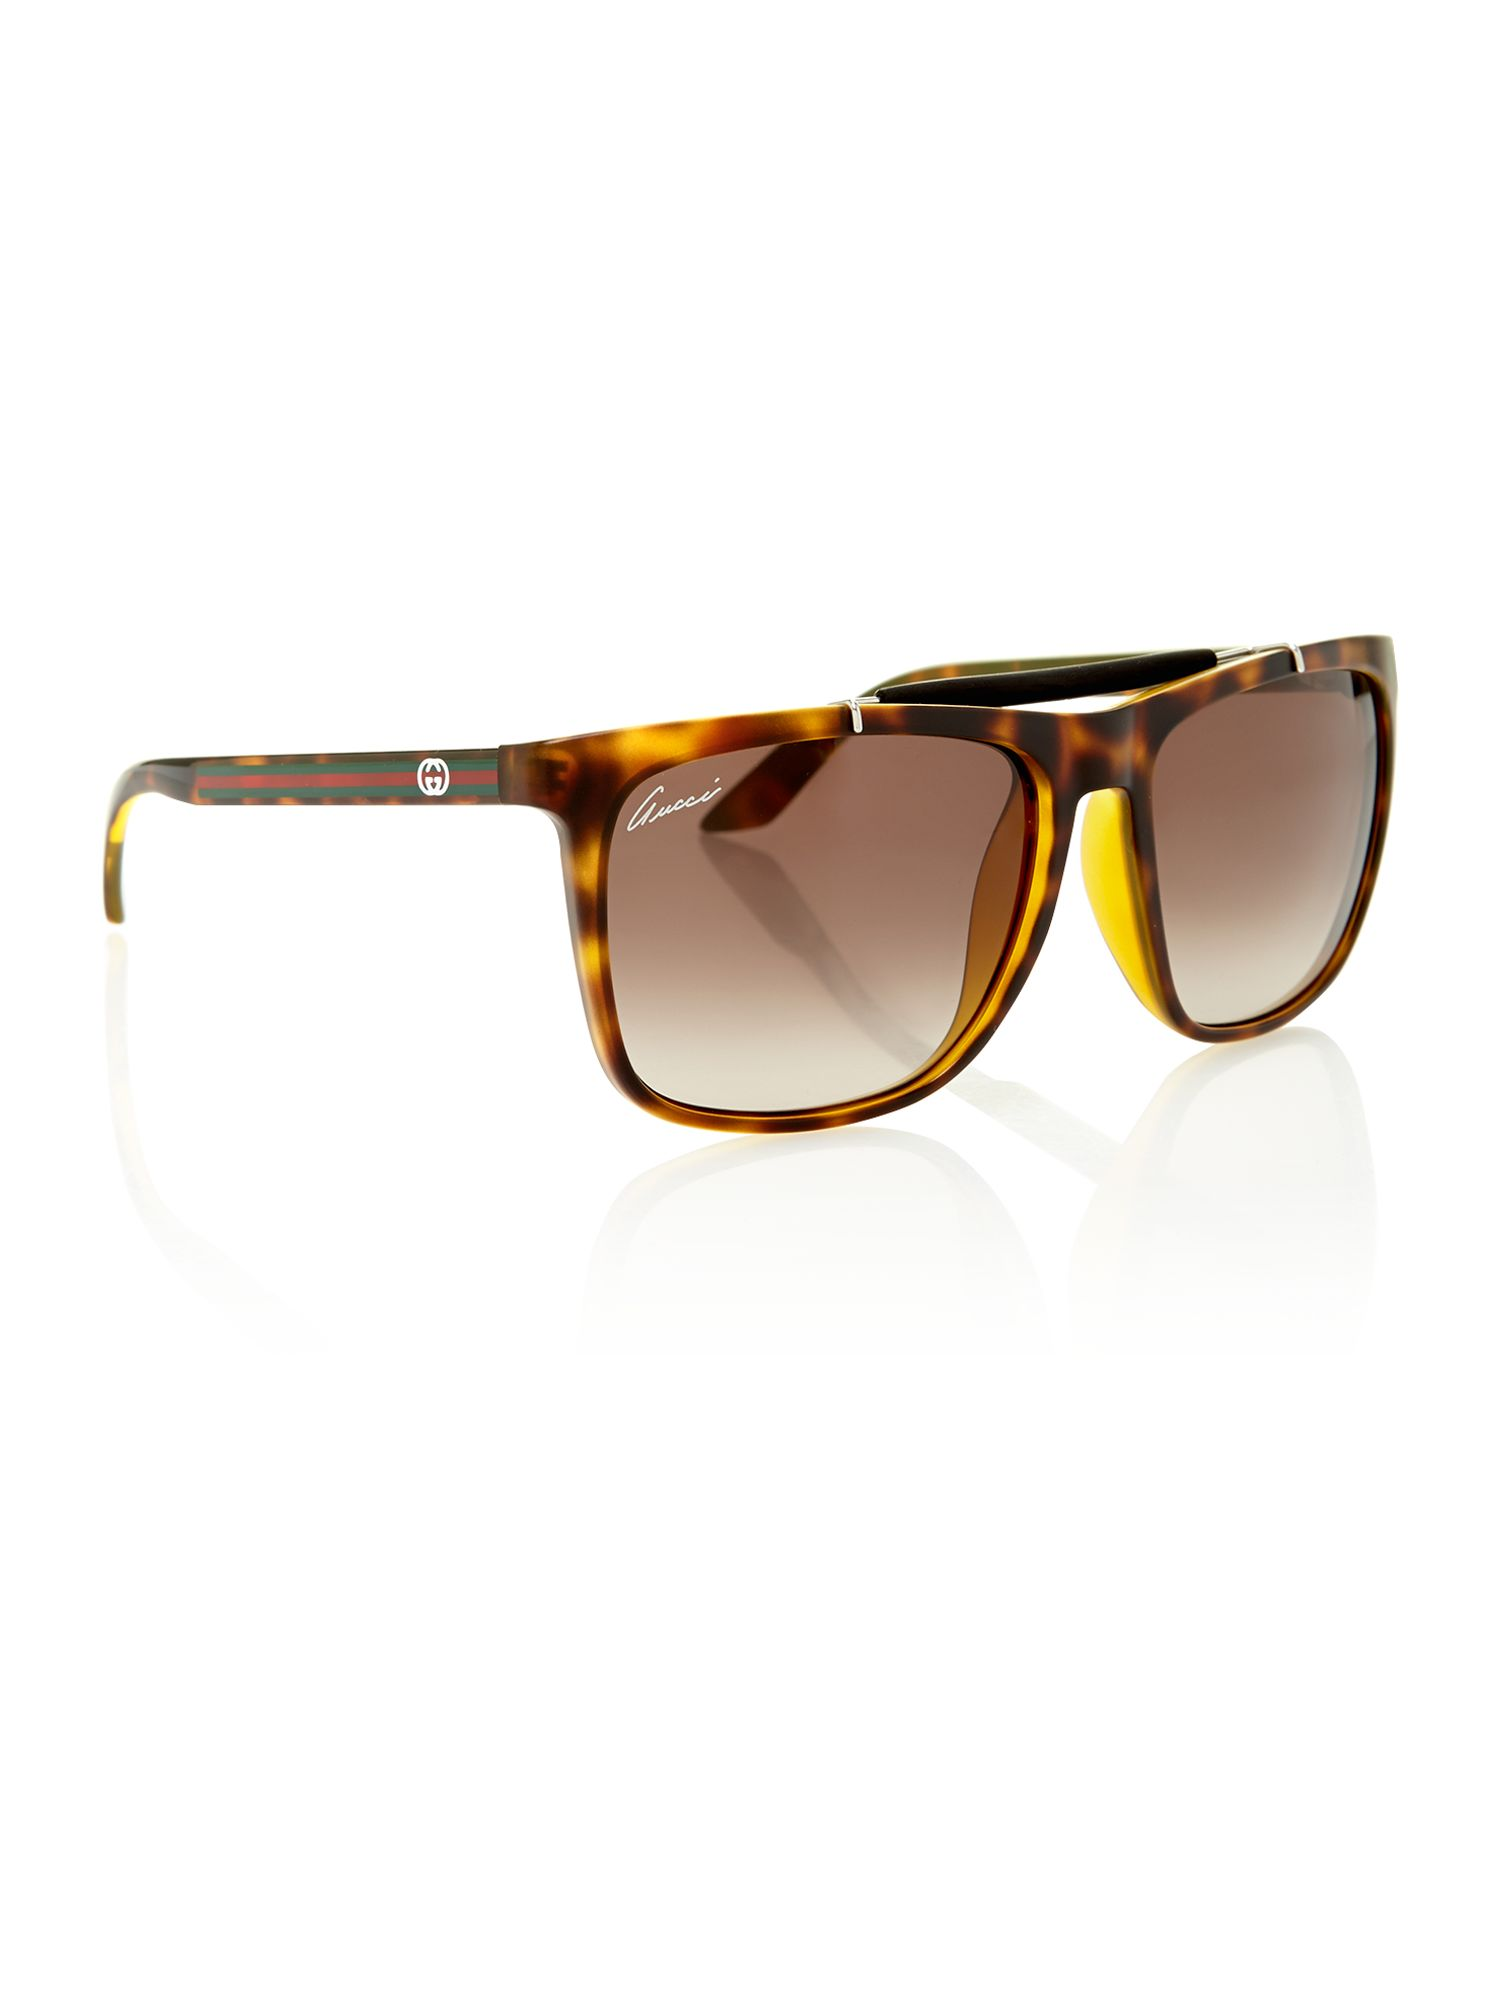 Ladies GG3588/S havana square sunglasses